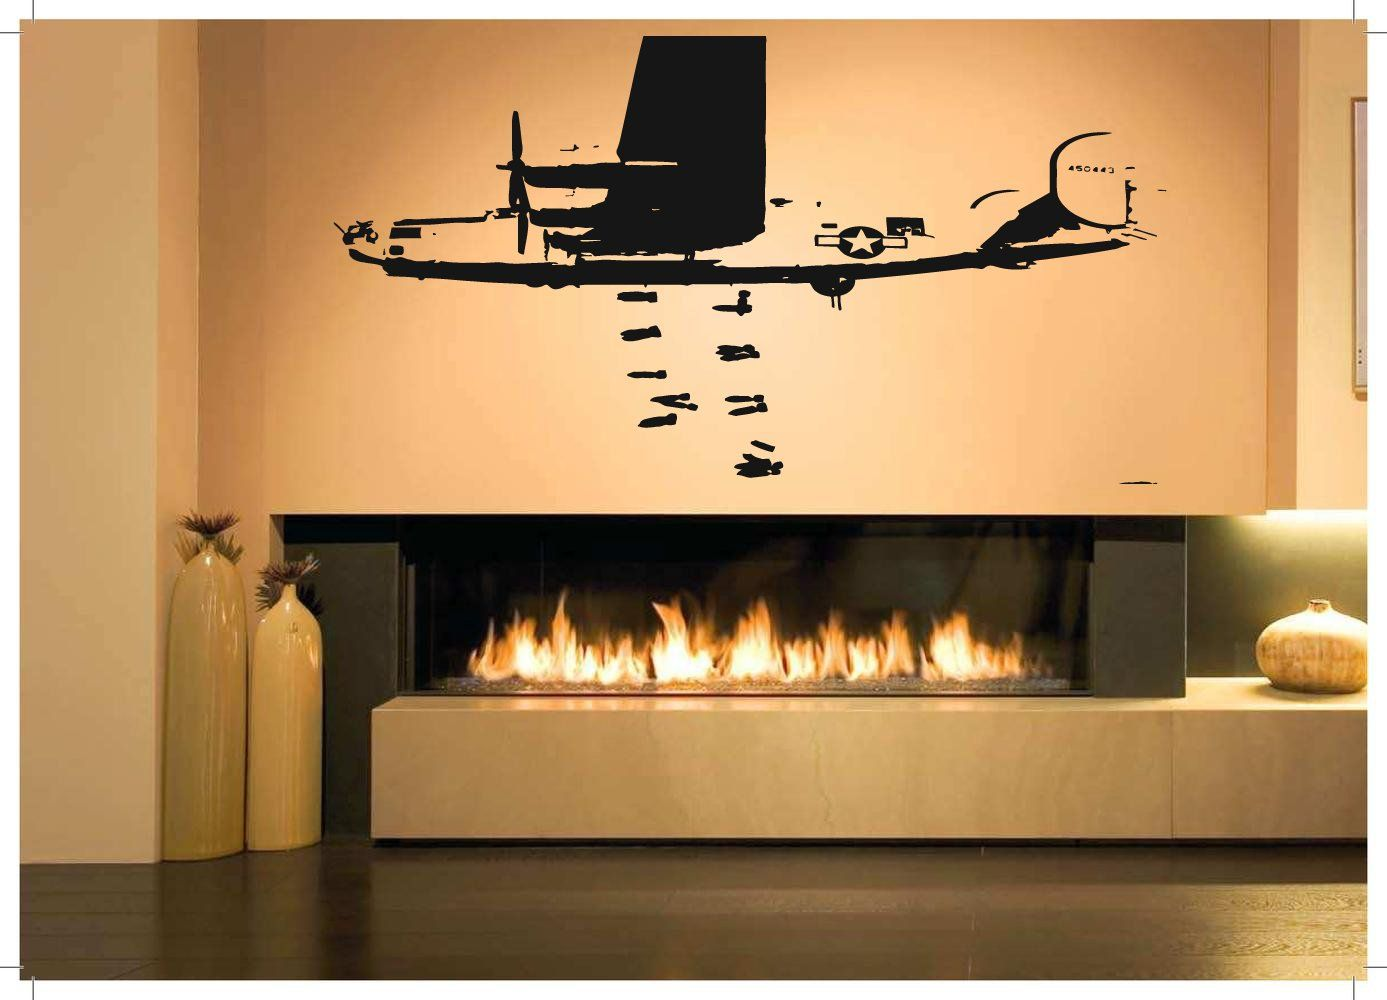 Colorful Plane Wall Decor Photo - All About Wallart - adelgazare.info